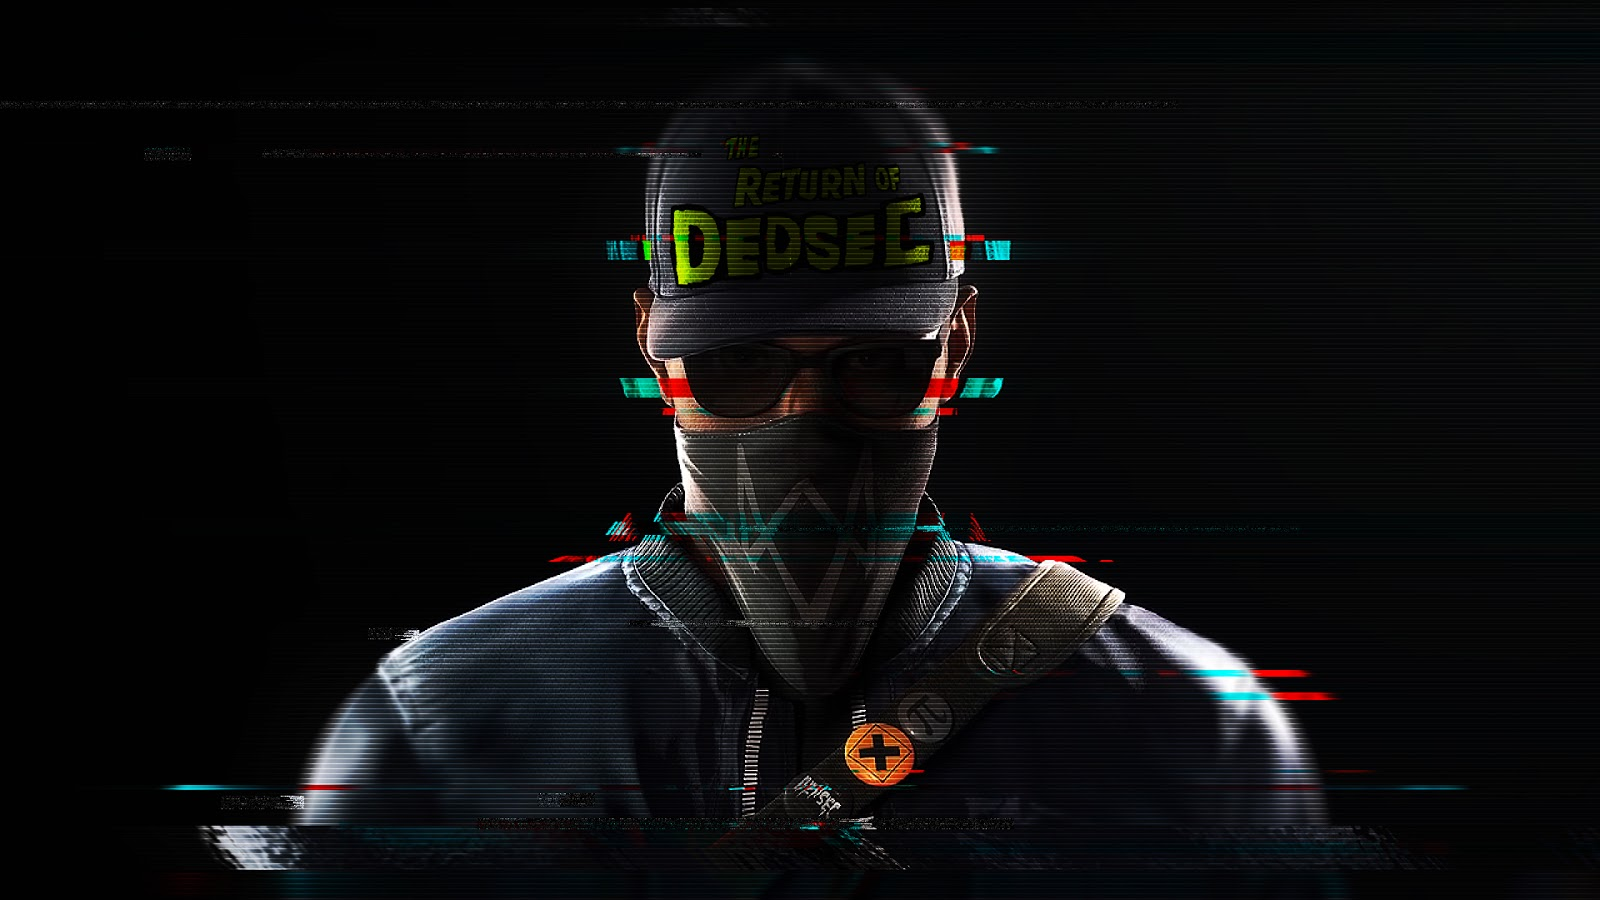 Watch Dogs 2 Wallpapers - Pc Game , HD Wallpaper & Backgrounds